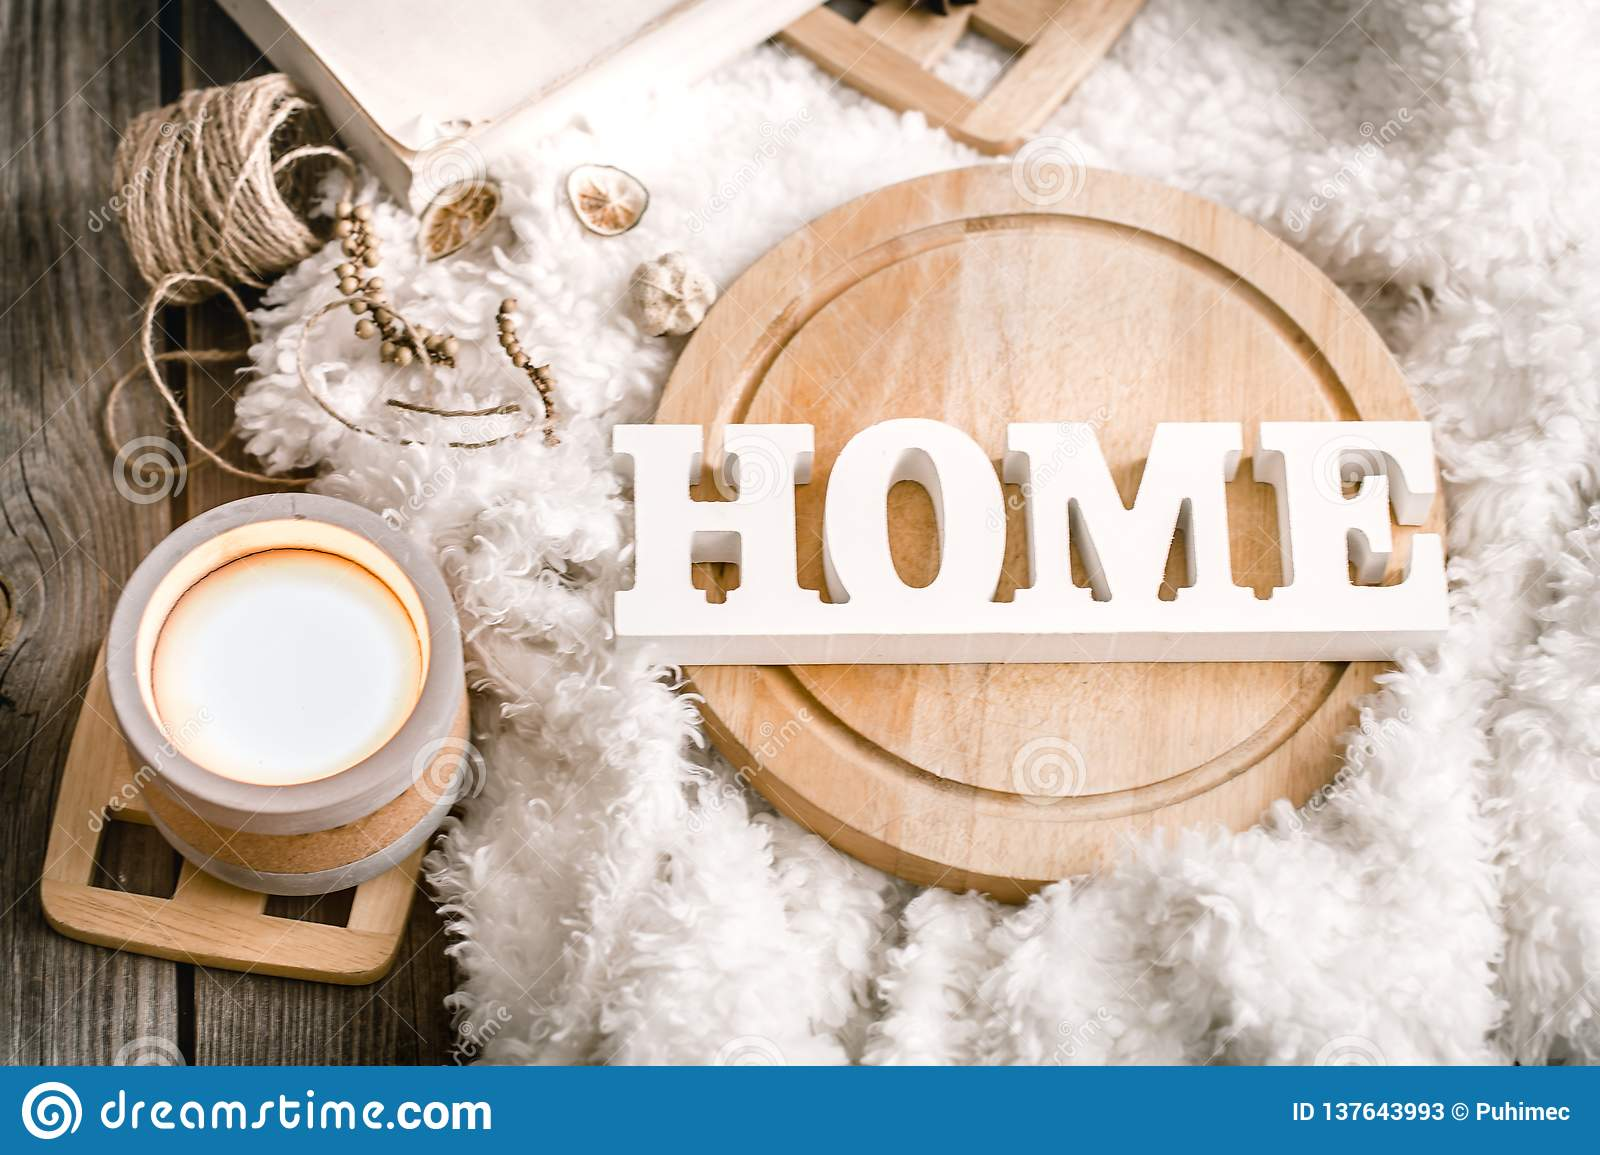 Items Of Cozy Home Decor With Wooden Letters Stock Image Image Of Craft Enamel 137643993